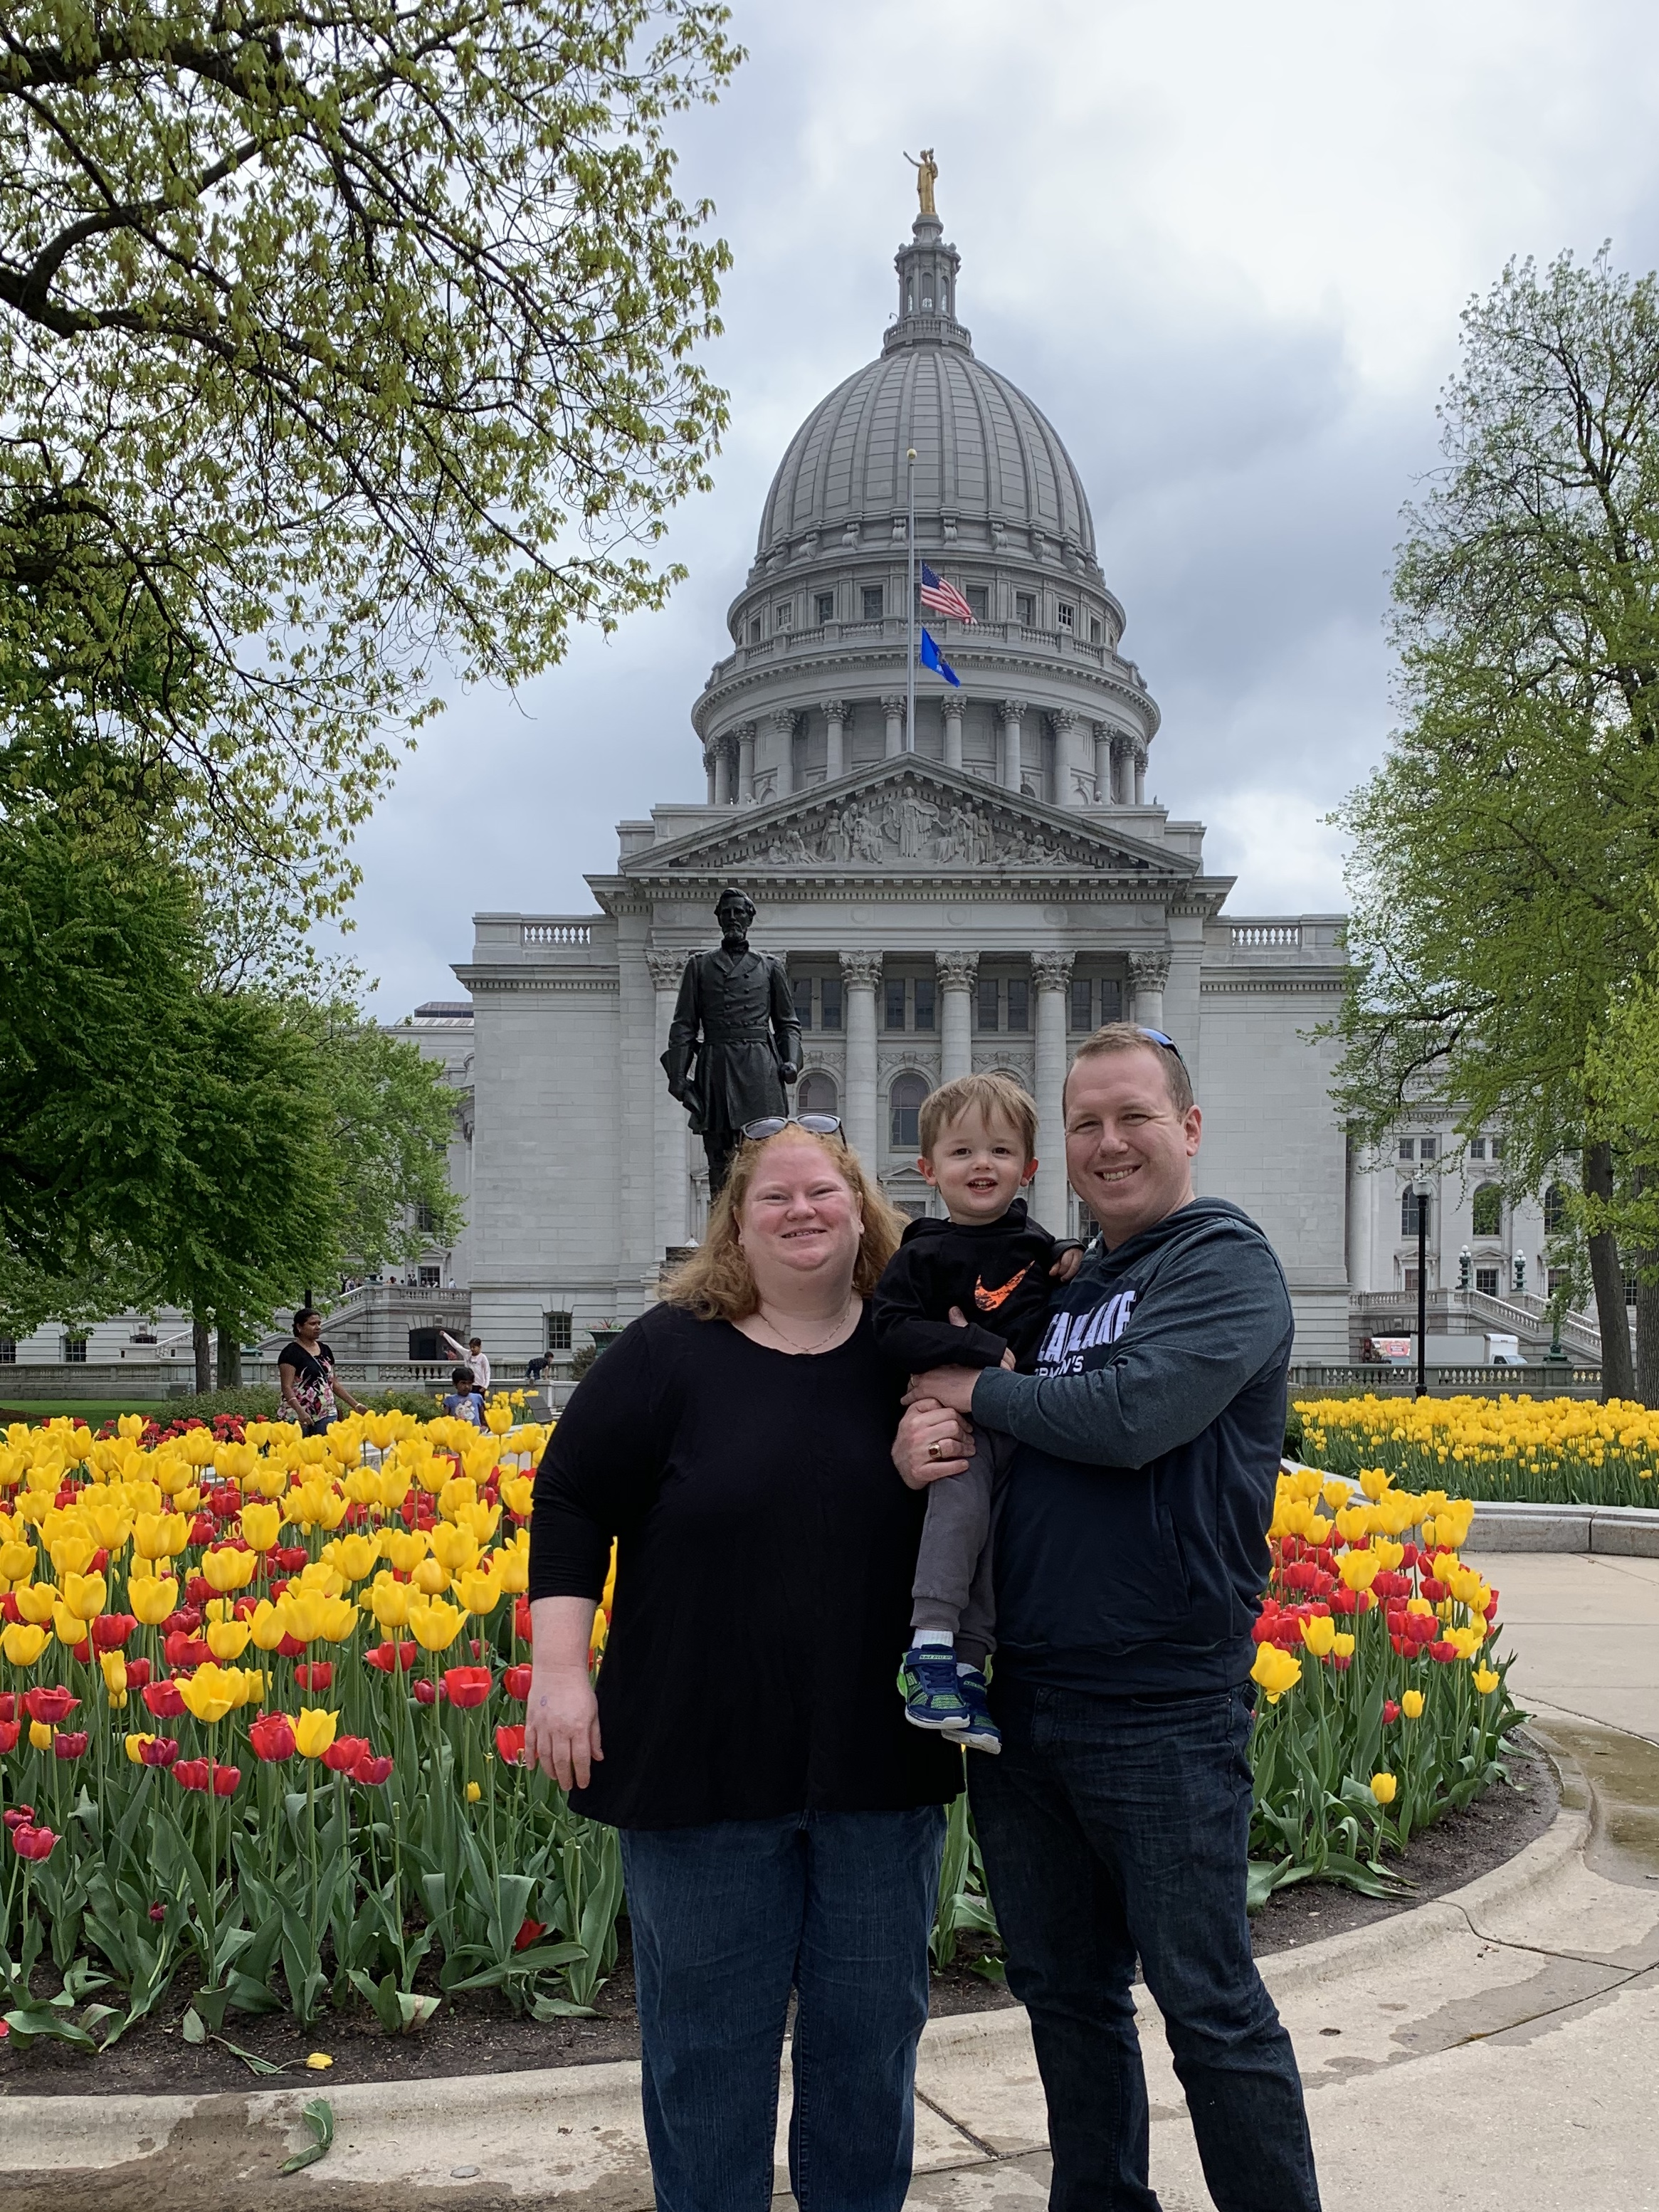 Enjoying the tulips at the Capitol